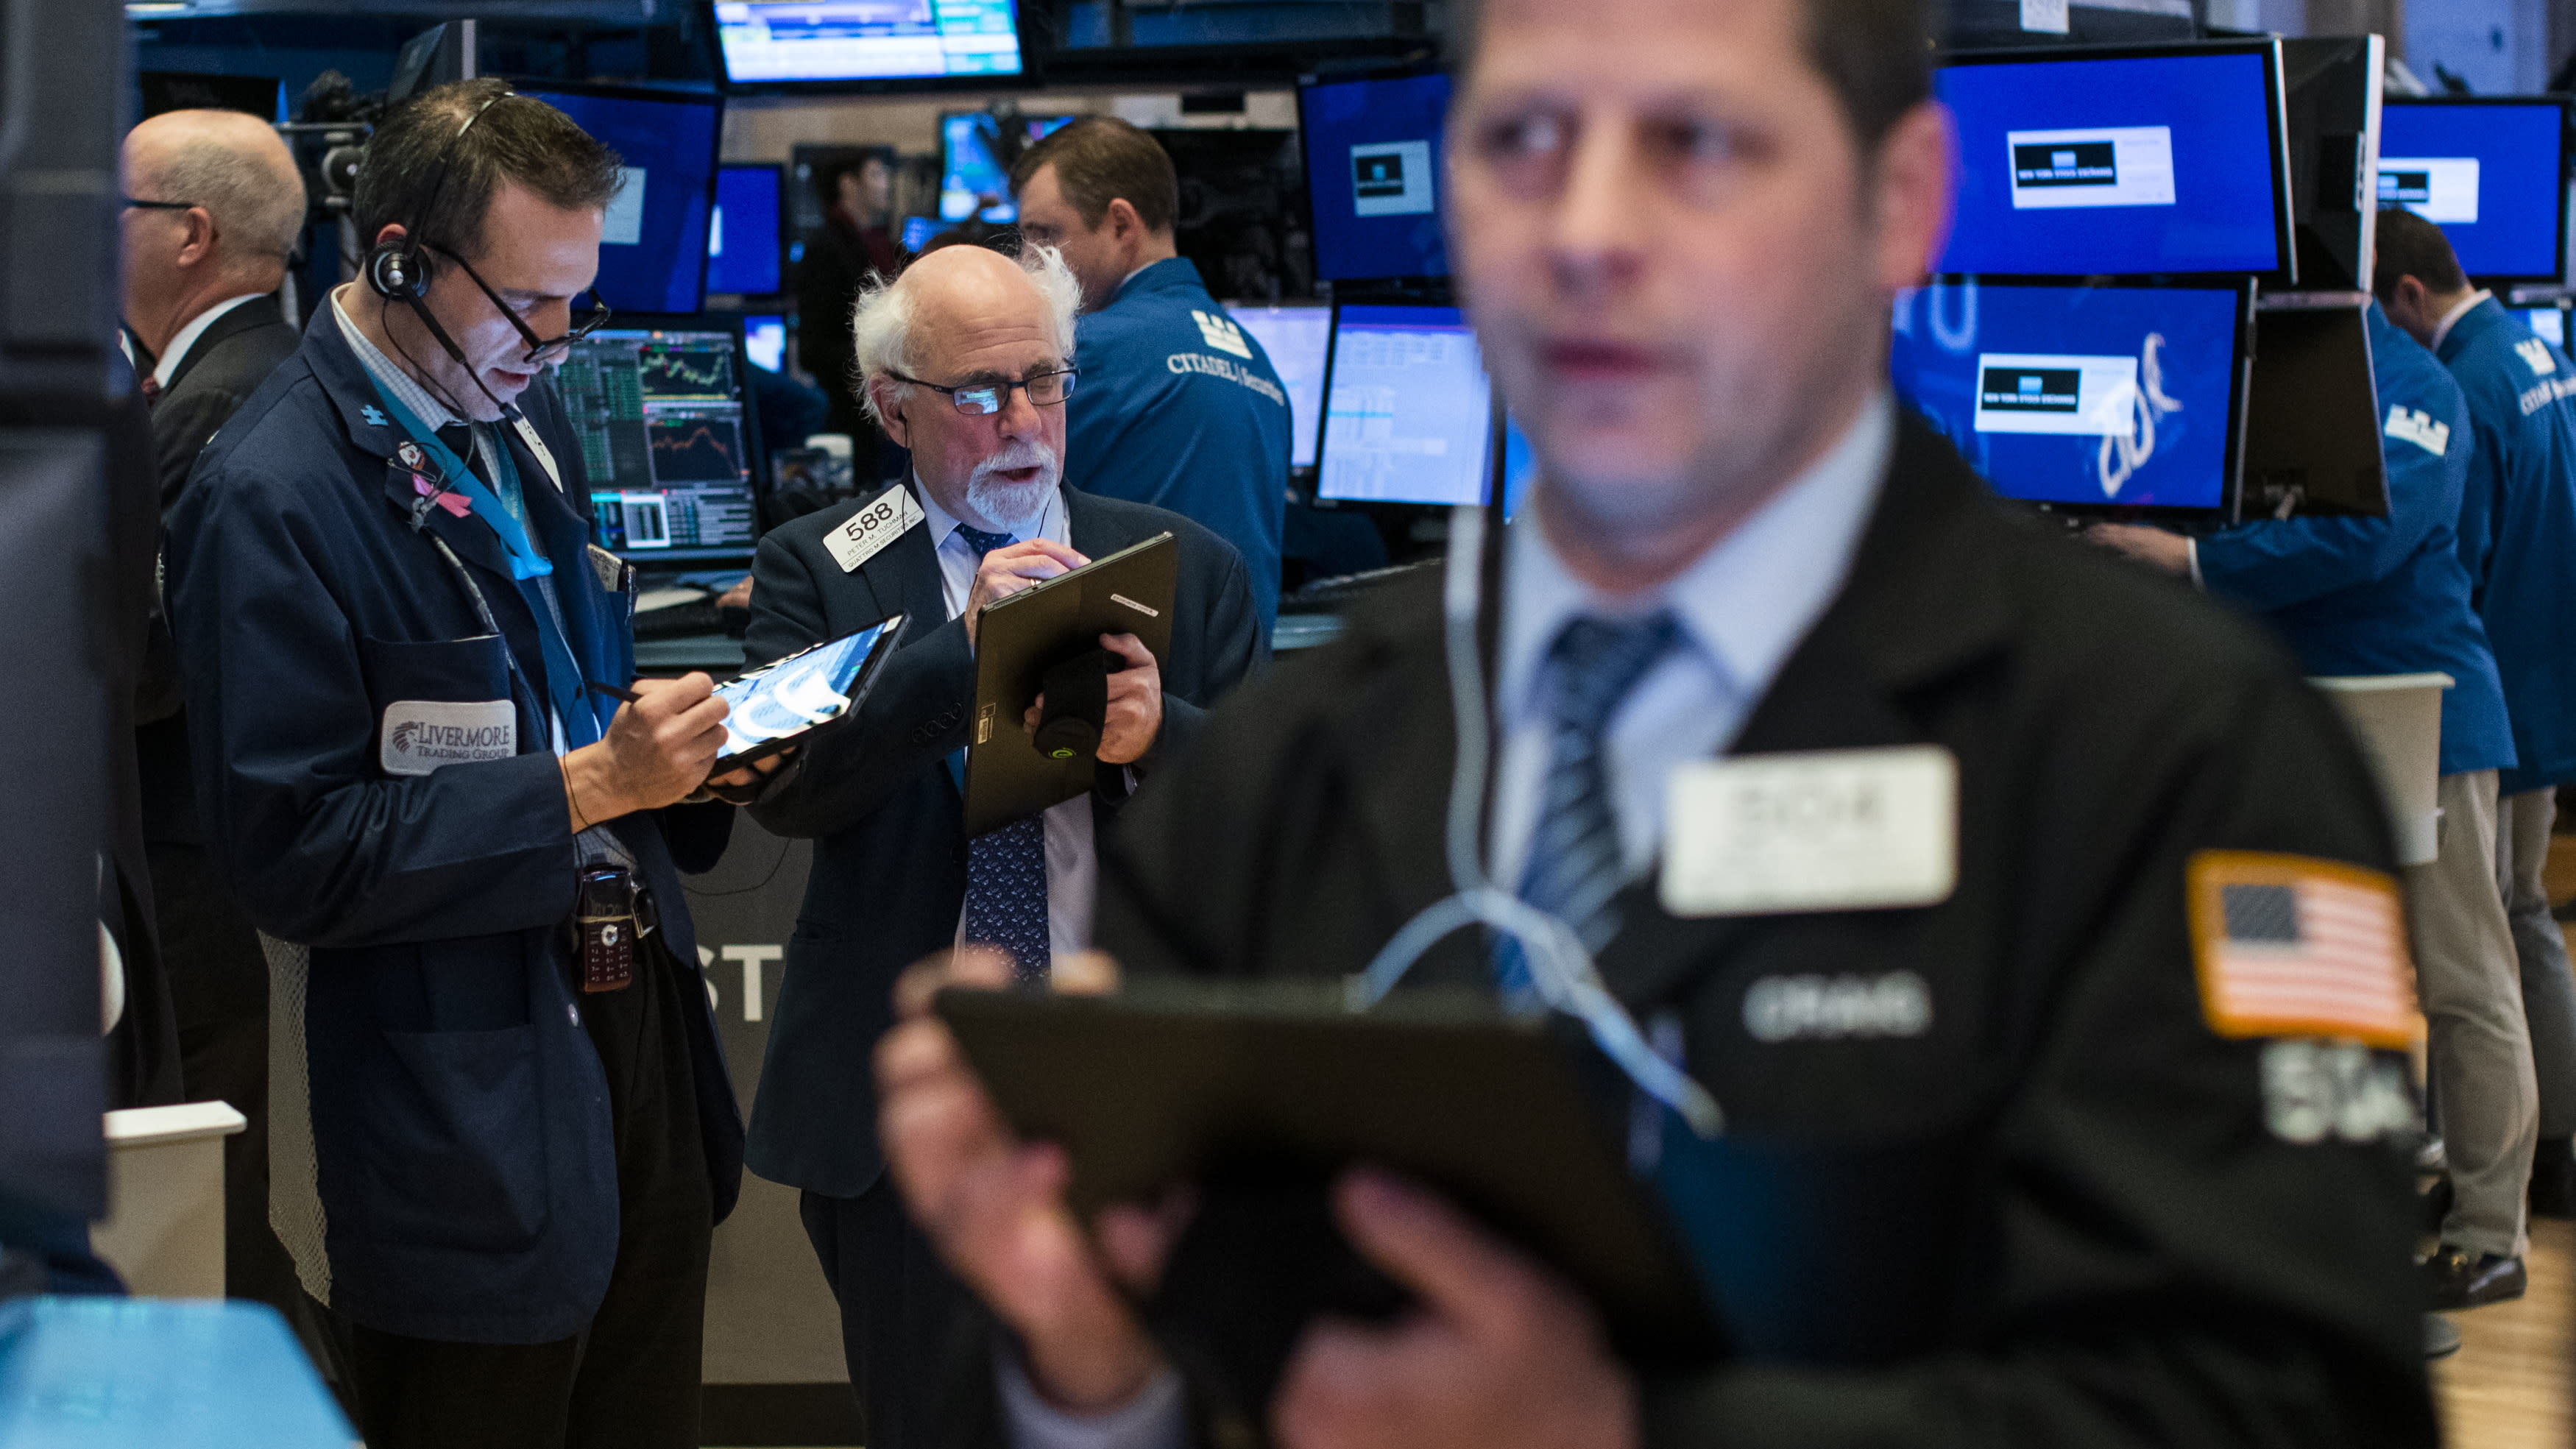 Stock market news live: Stocks sink despite blowout January jobs data